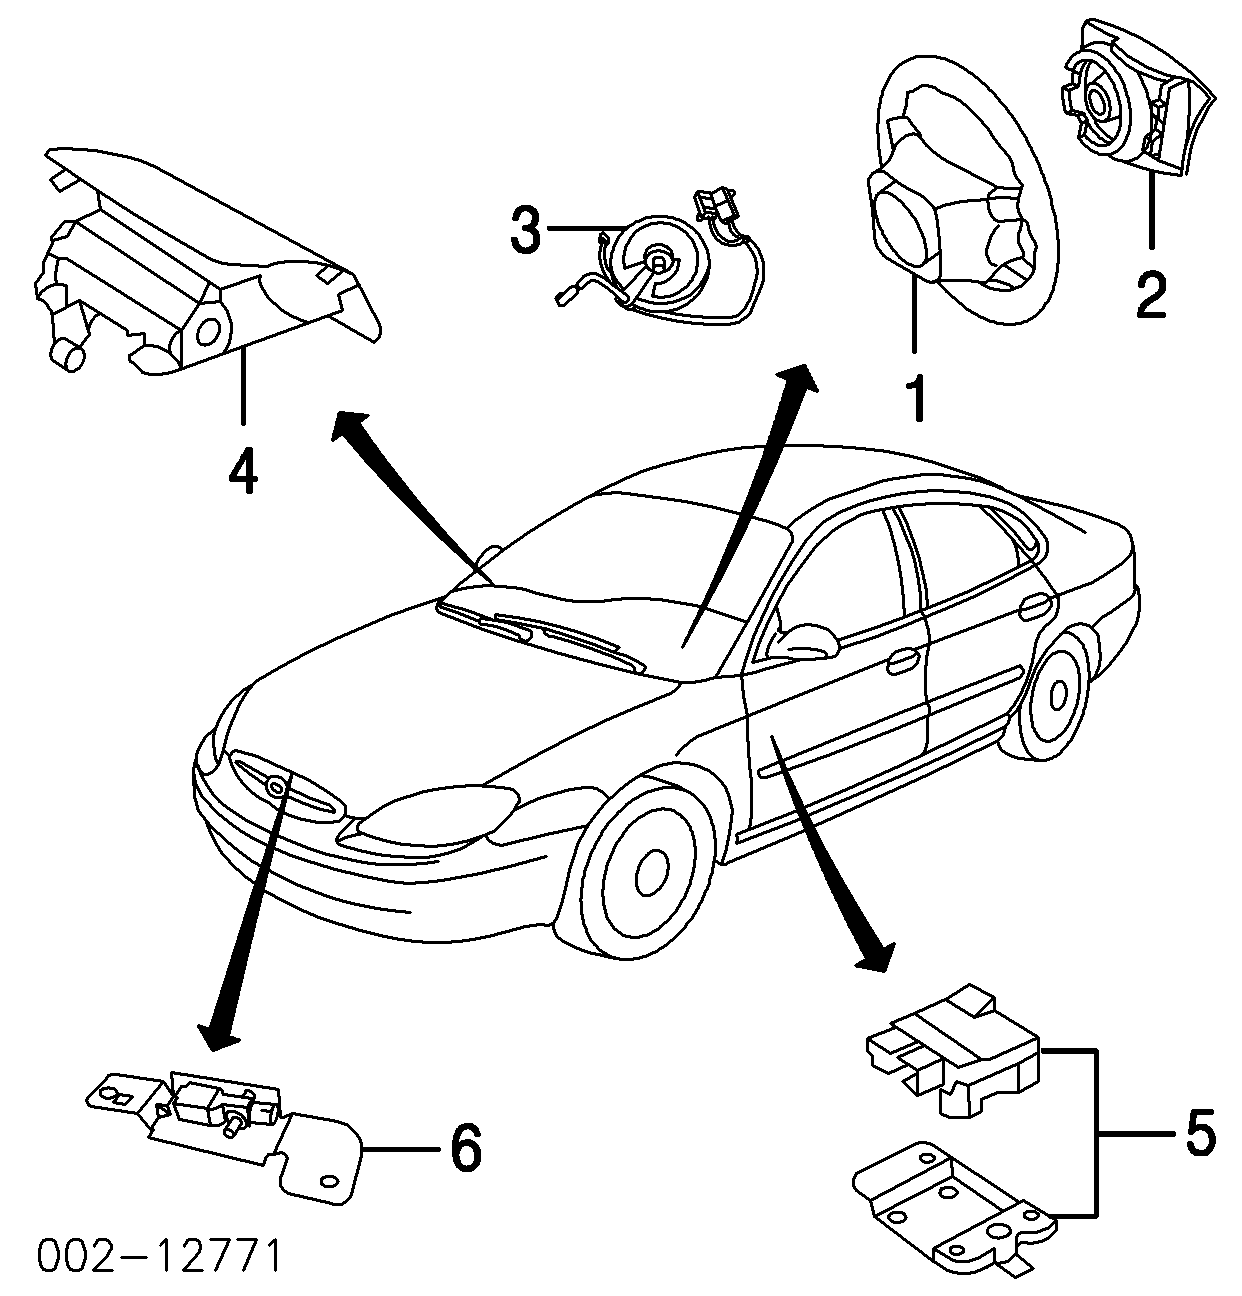 Ford Taurus Air Bag System